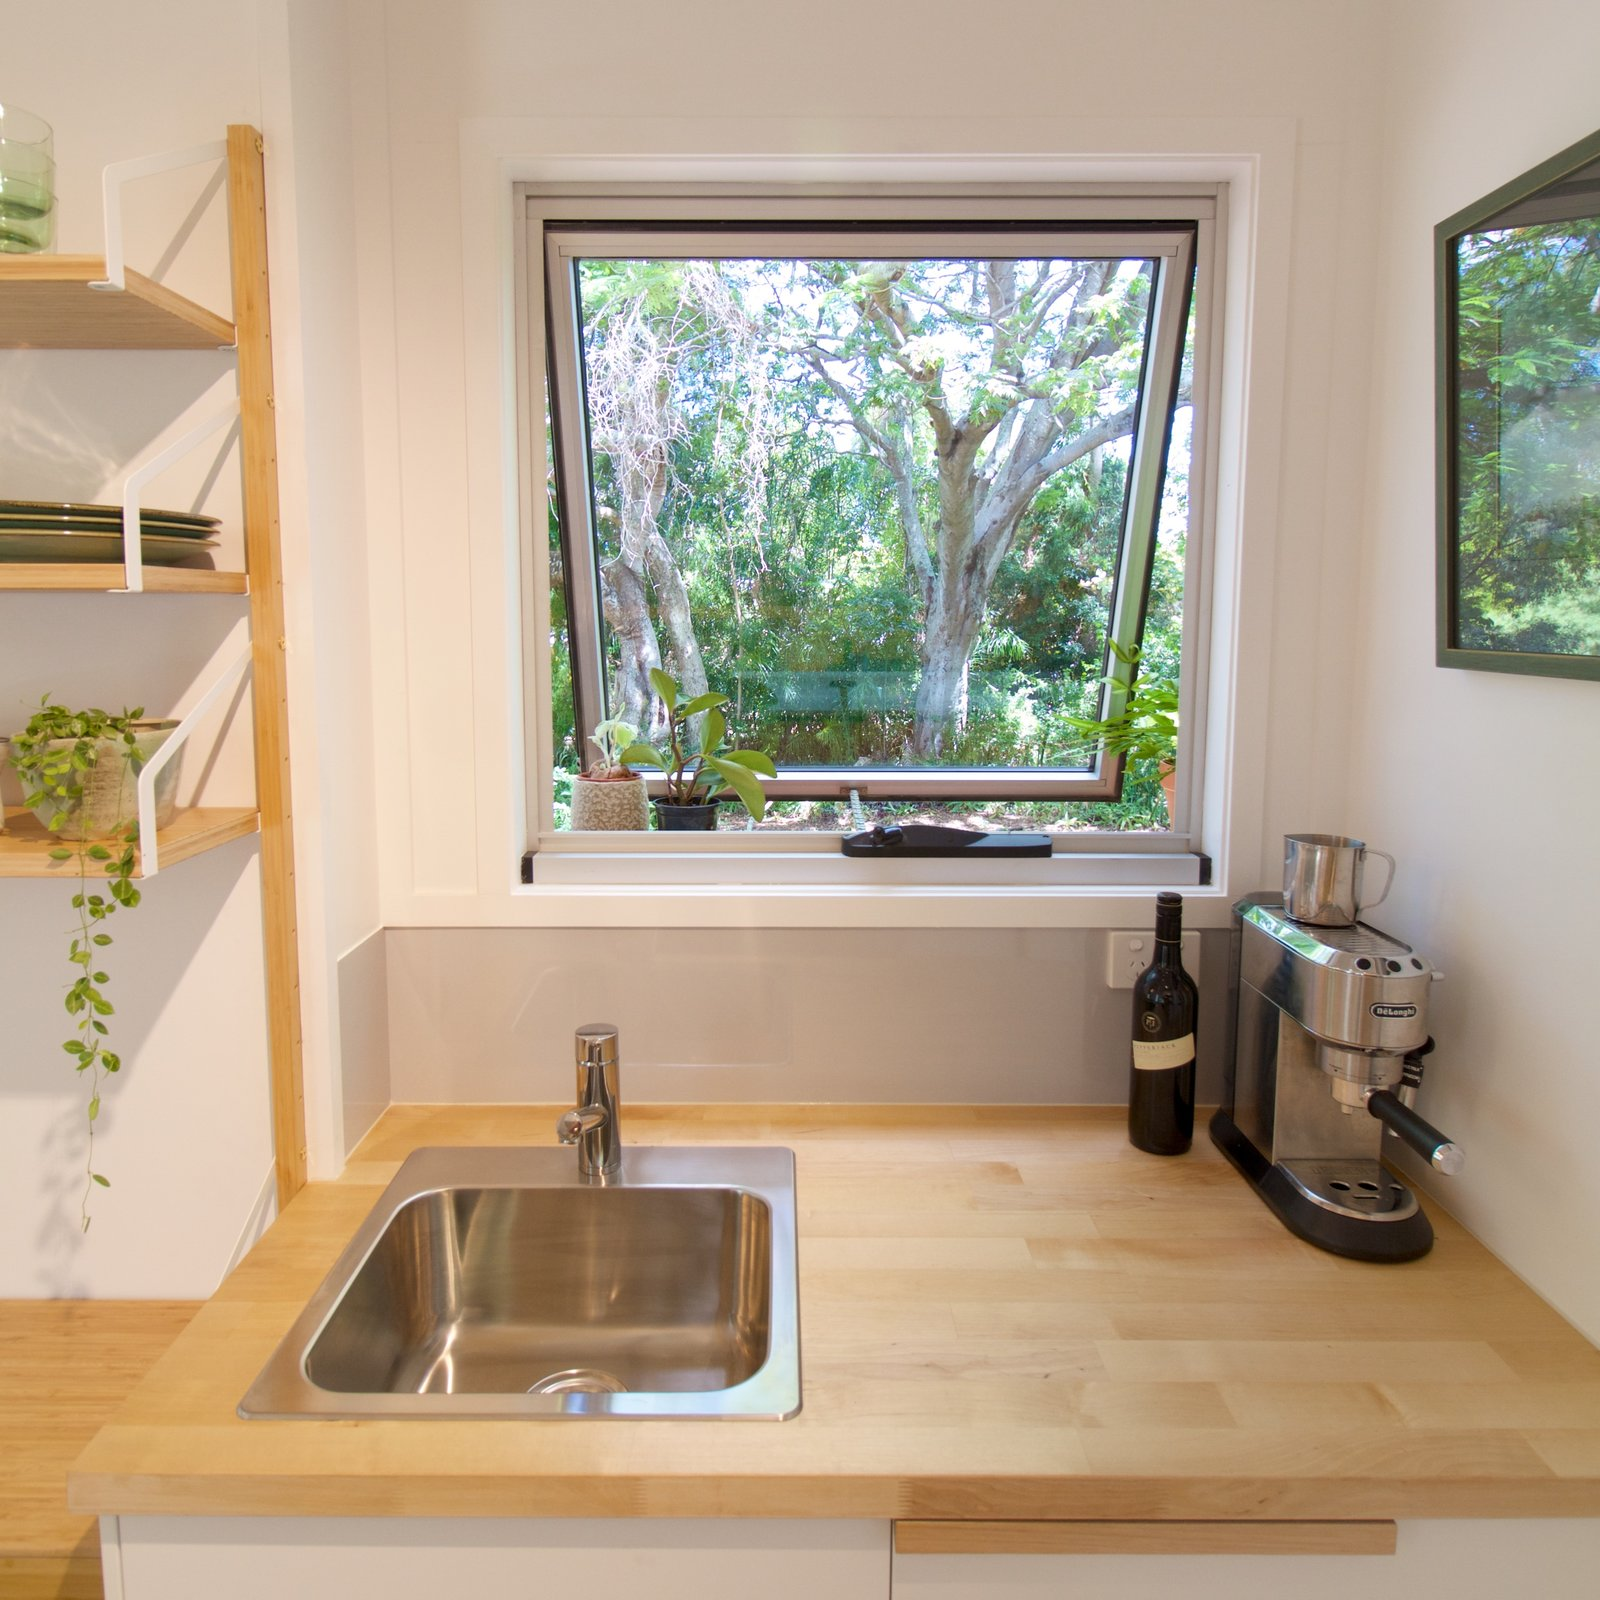 By resisting the urge to fill every inch of the tiny house, the team retains a spacious feel.